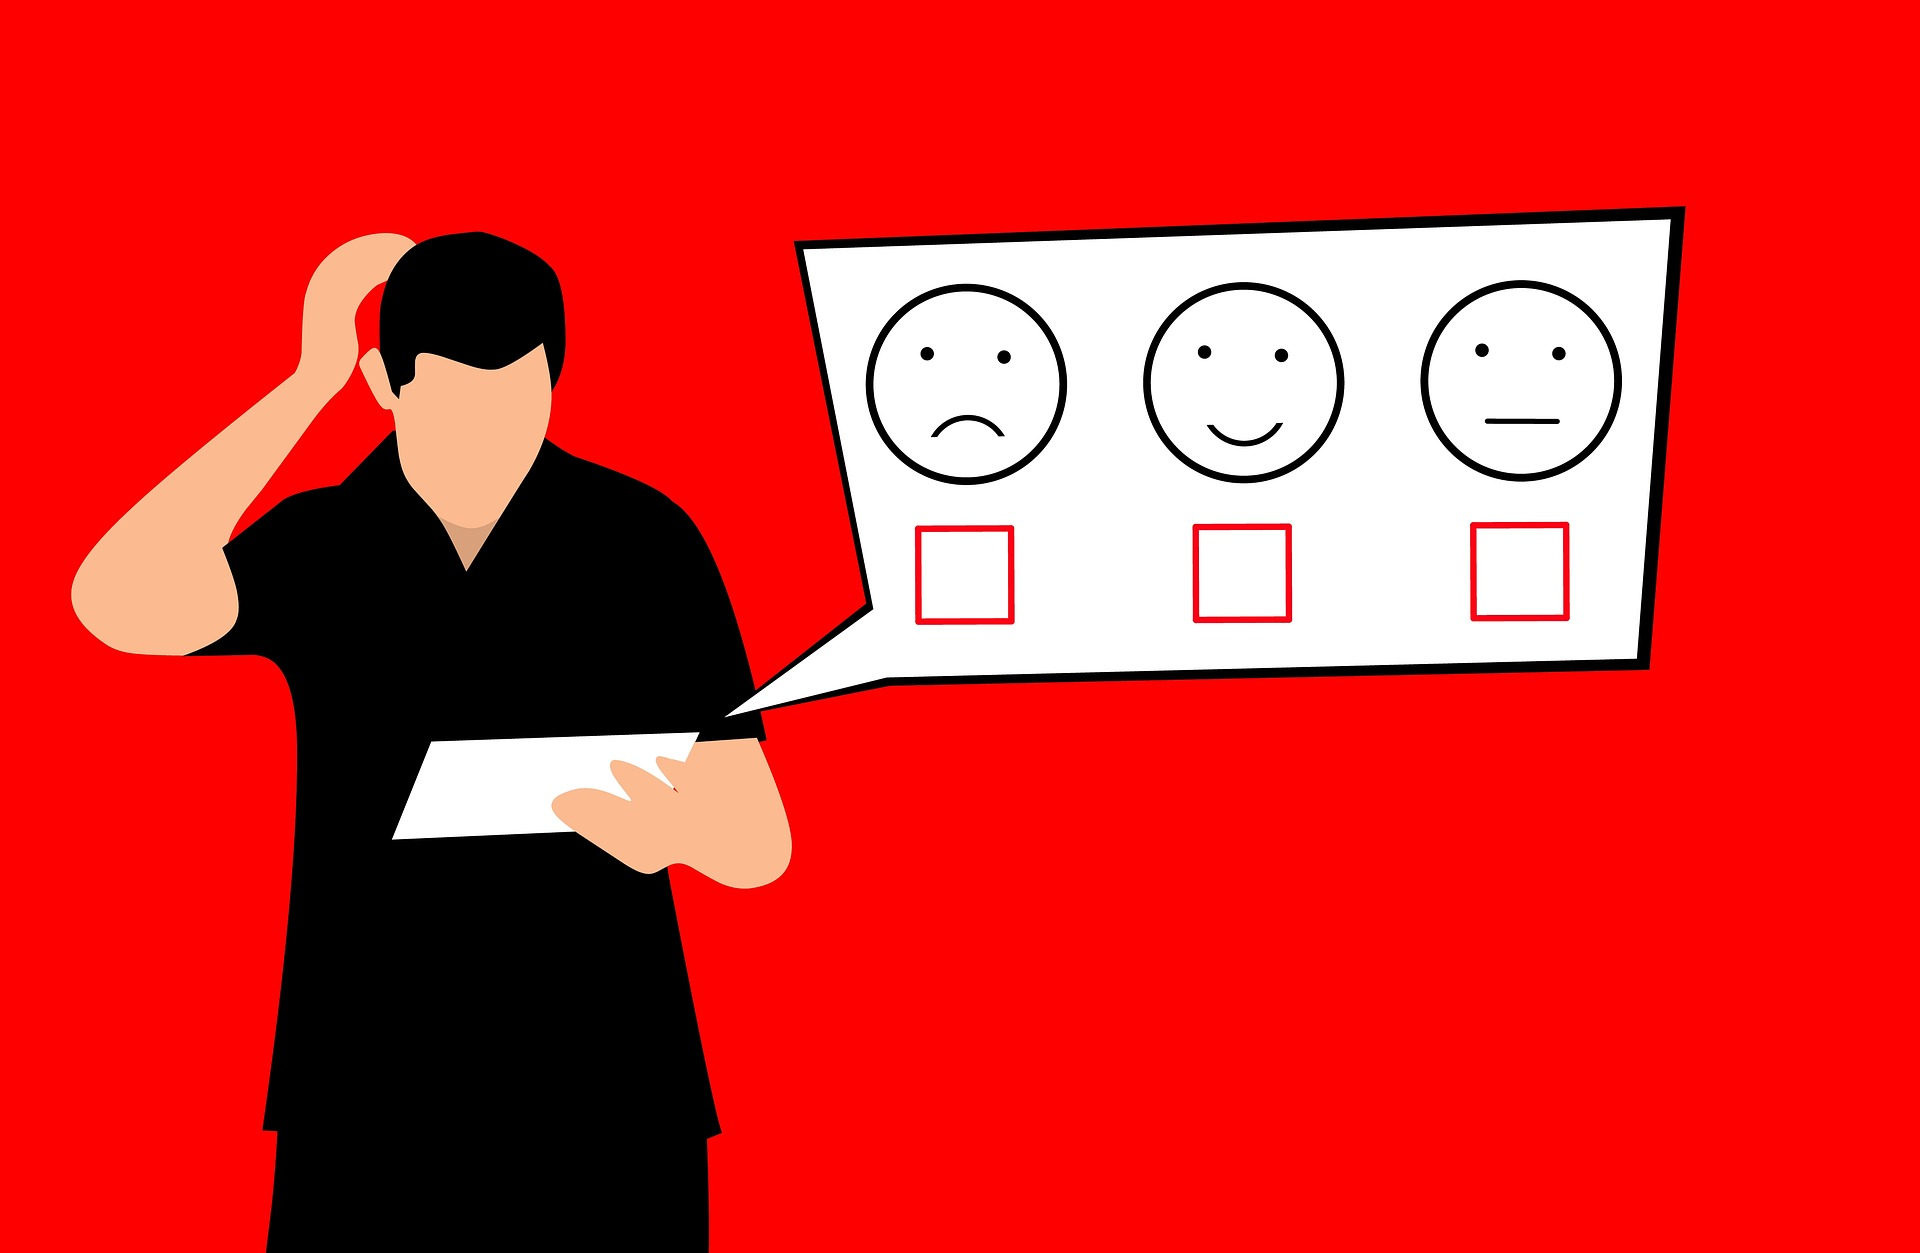 graphic image representing a man rating an experience with bad, neutral and good images represented by facial expressions - TAB Bank